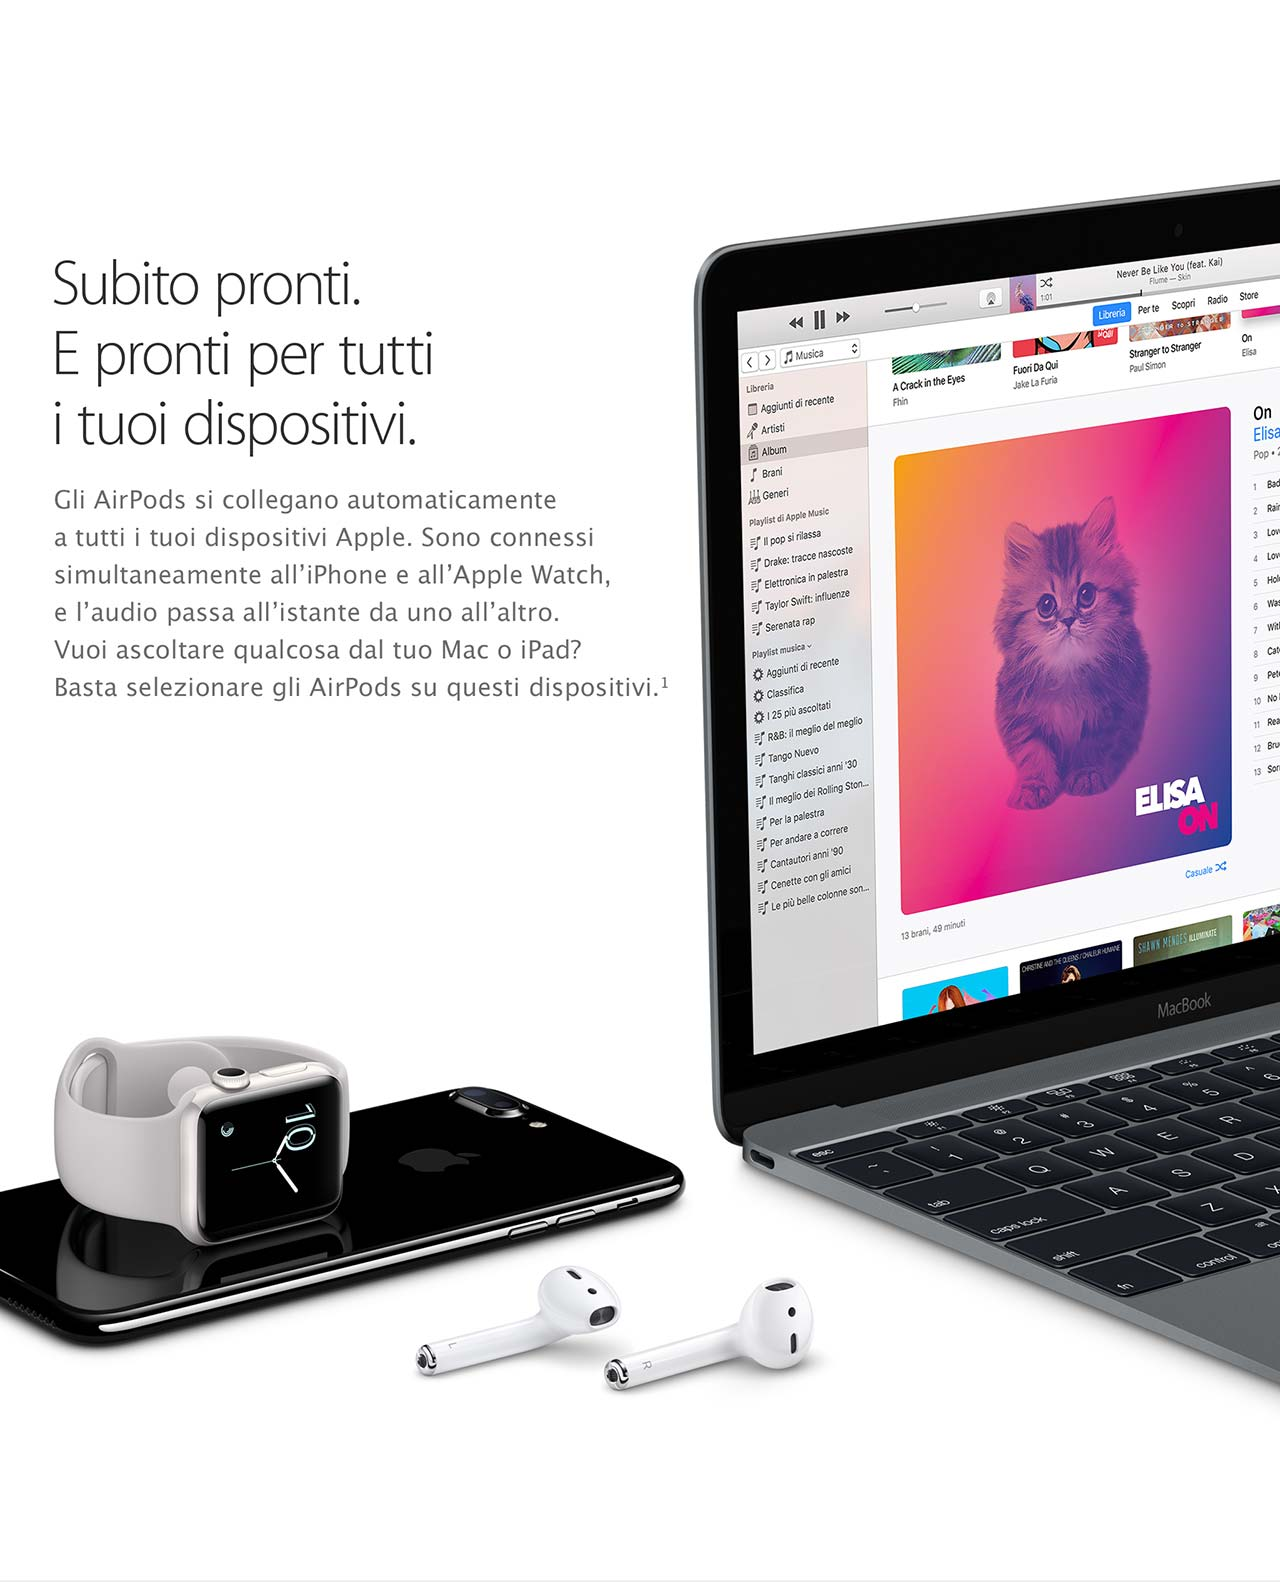 AirPods connessi ad altri dispositivi Apple